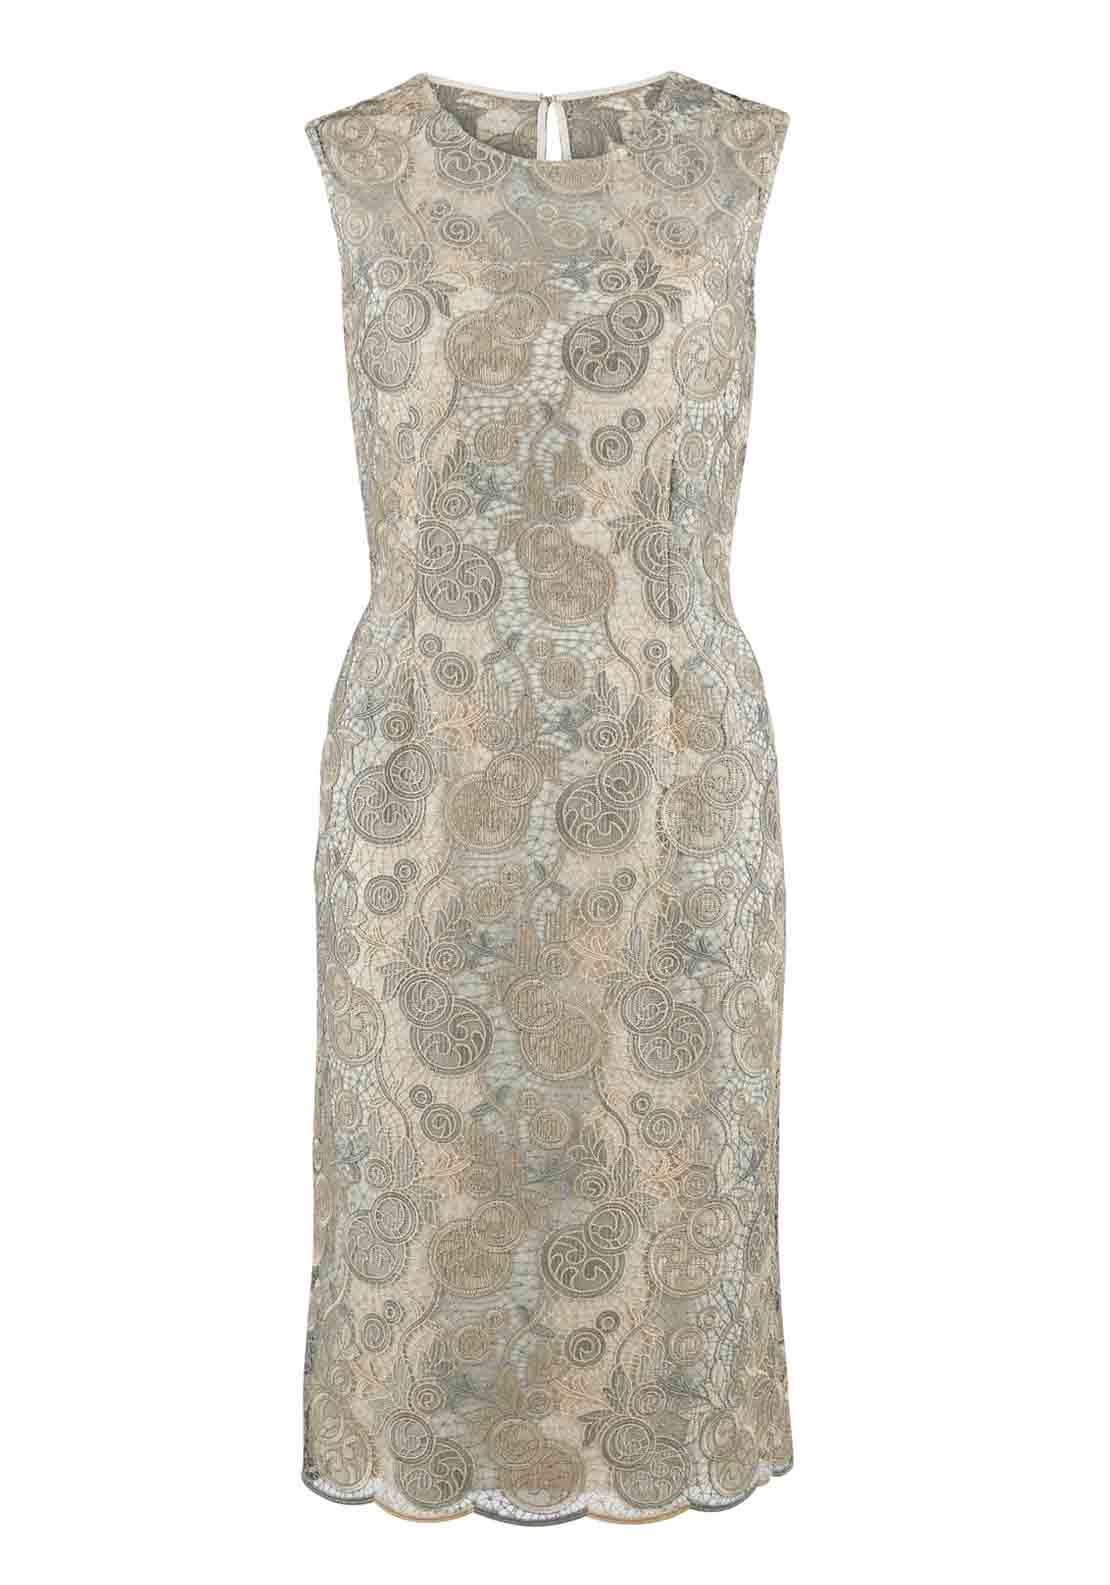 Gina Bacconi Embroidered Lace Overlay Pencil Dress, Champagne and Silver